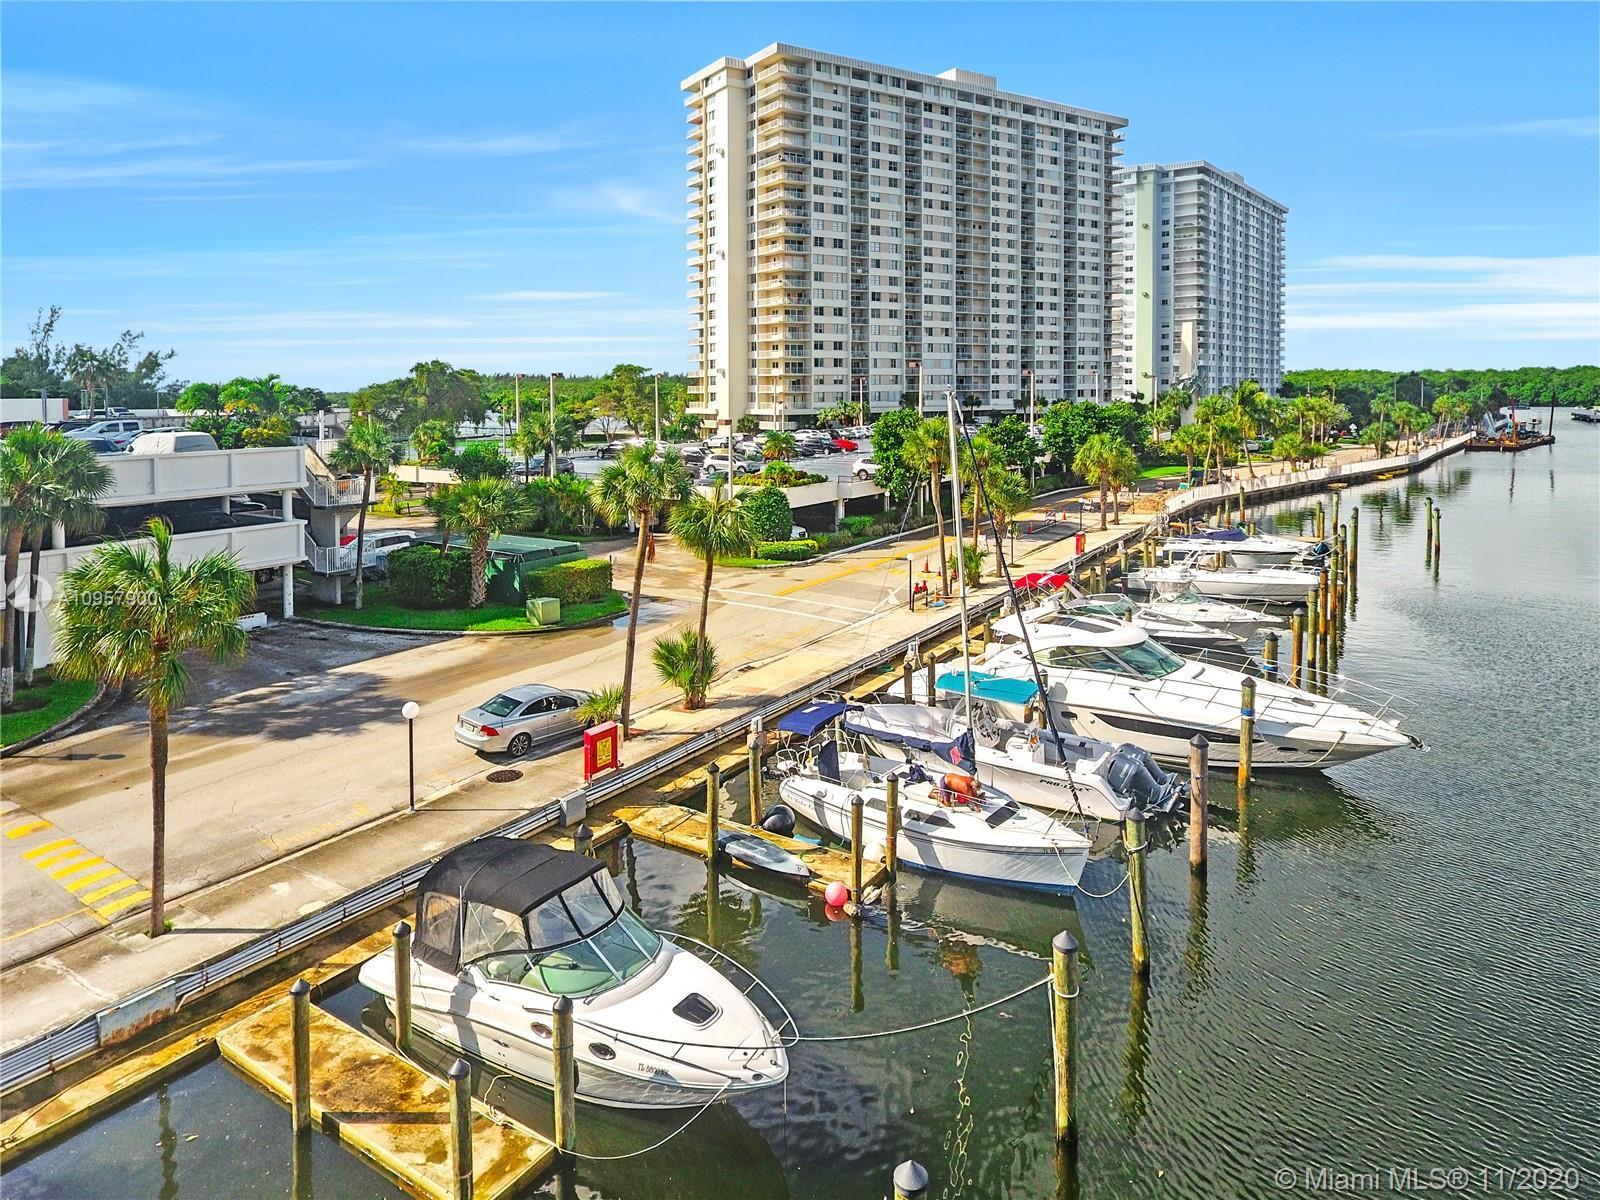 Best price for a 2/2 unit with gorgeous Intracoastal and Bay views in a full-service building locate